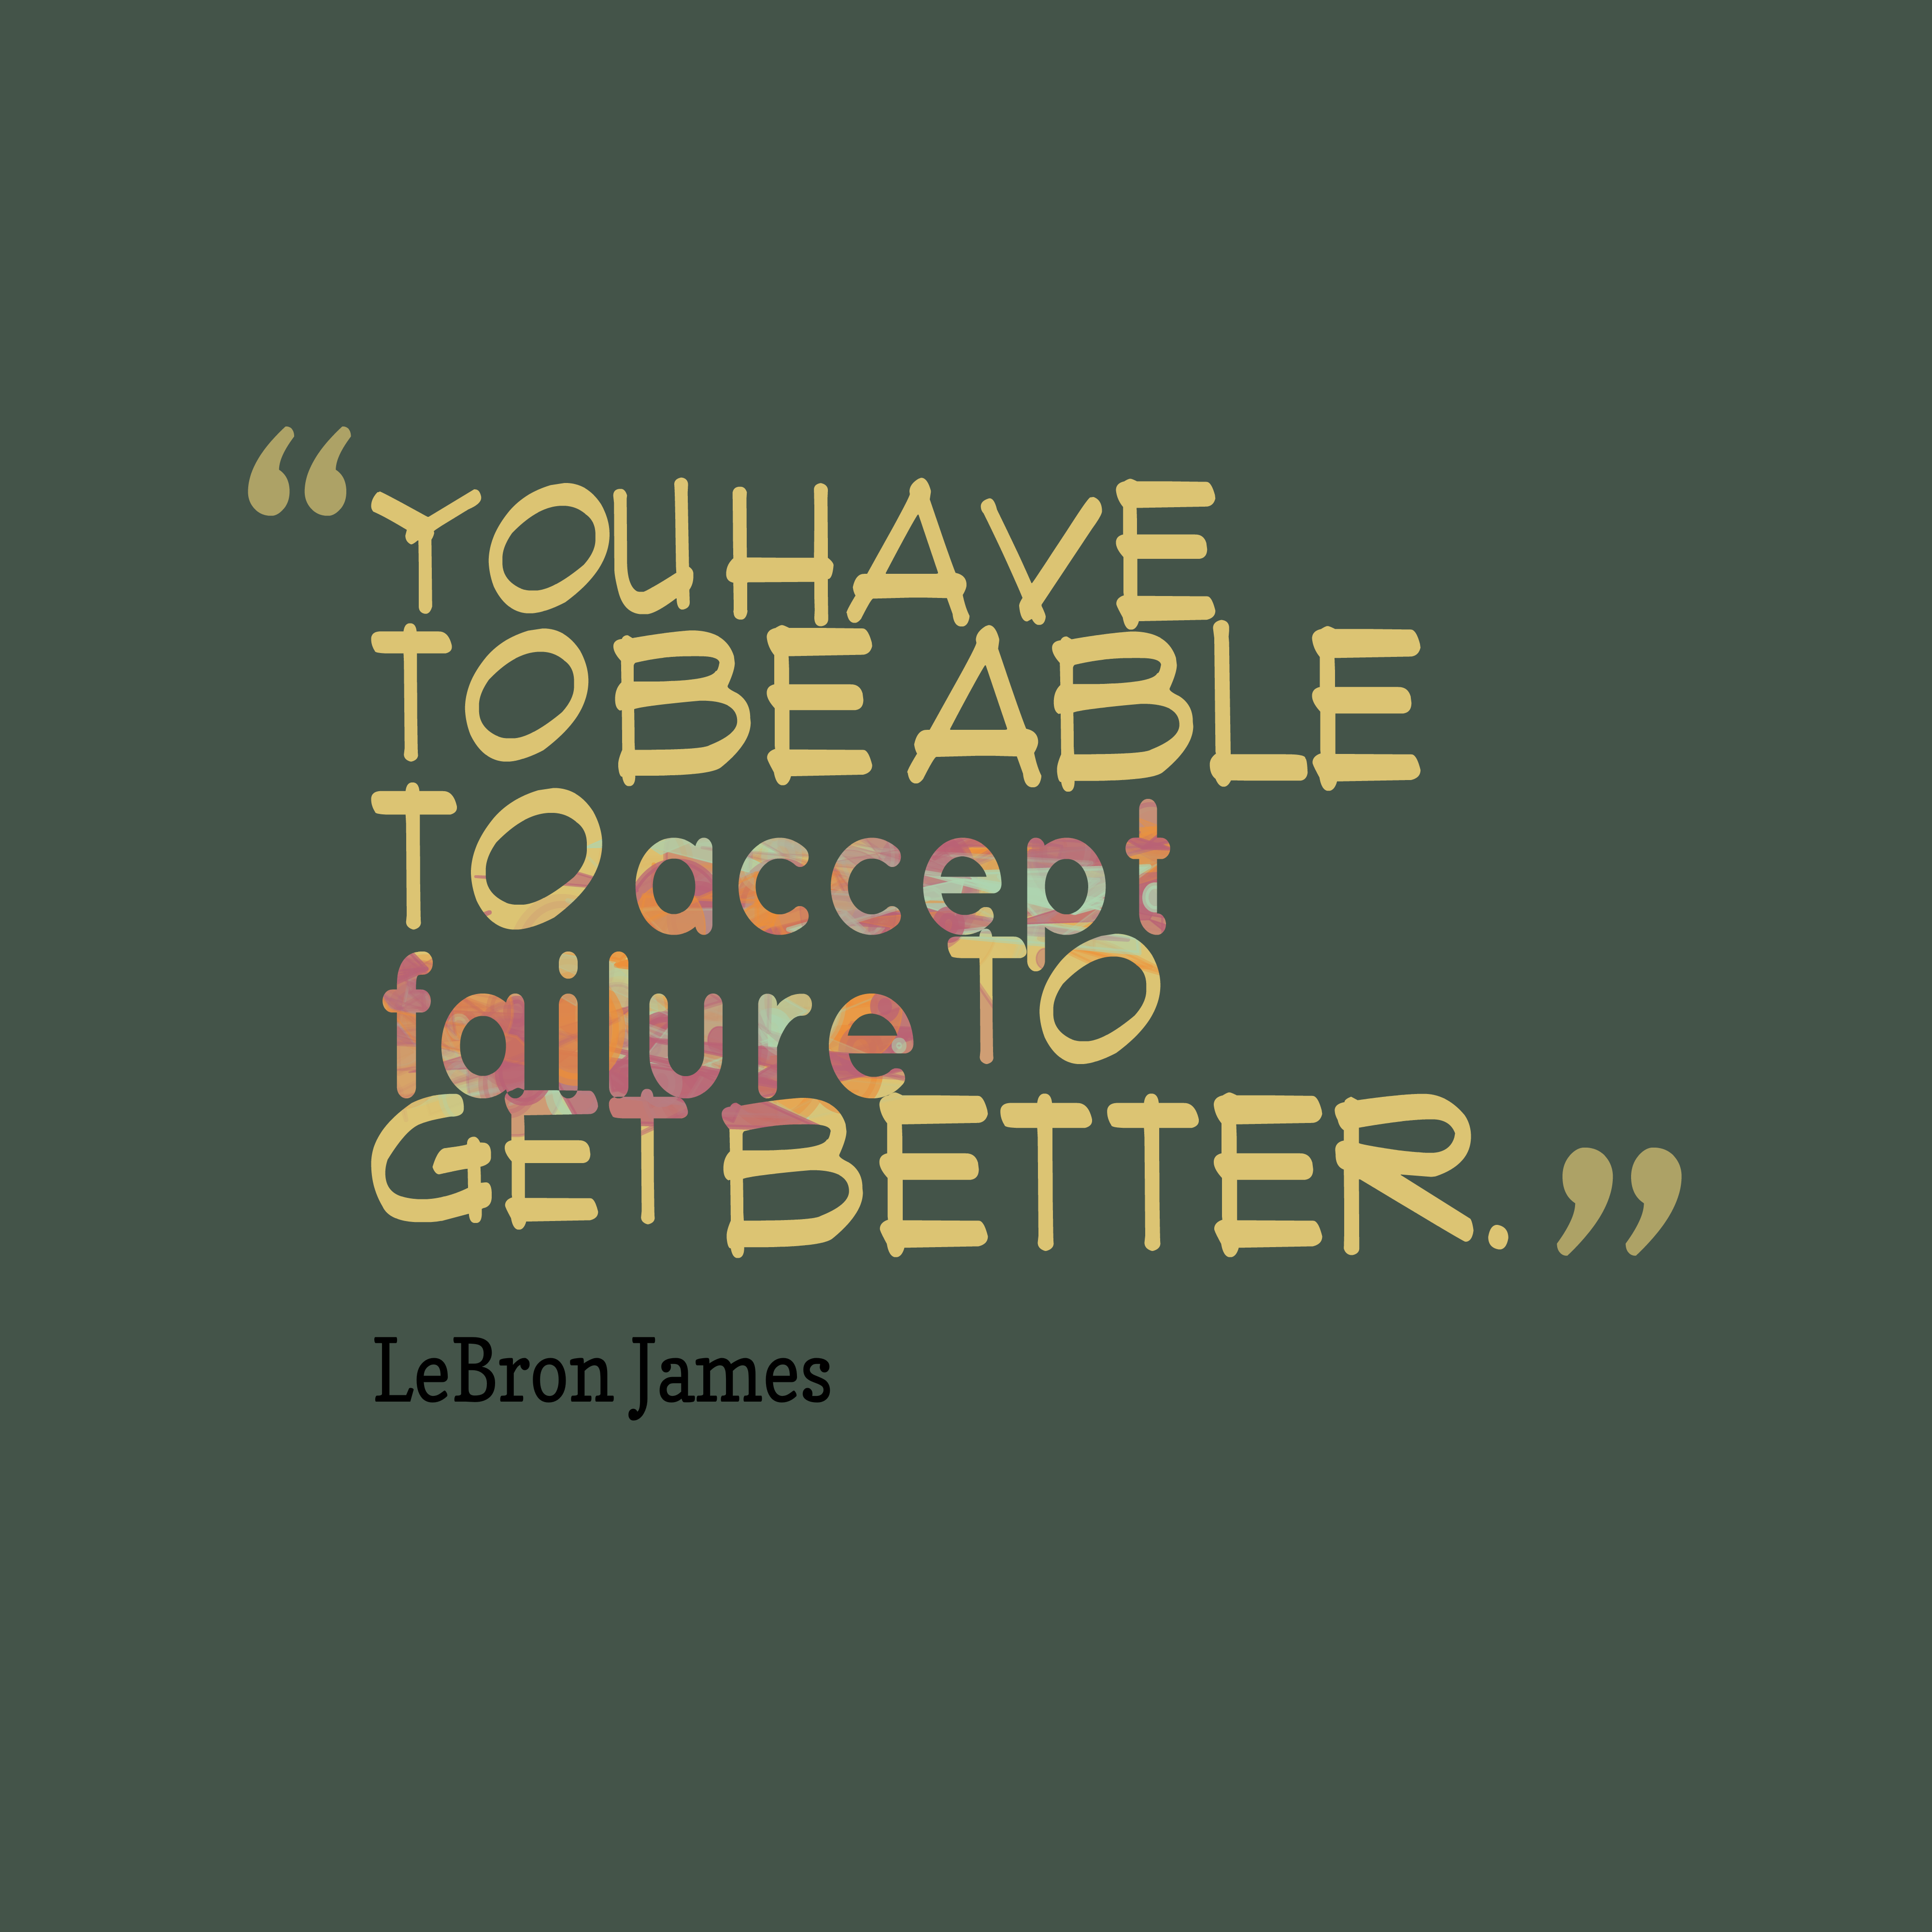 best of LeBron James quotes . Inspirational quotes by LeBron James